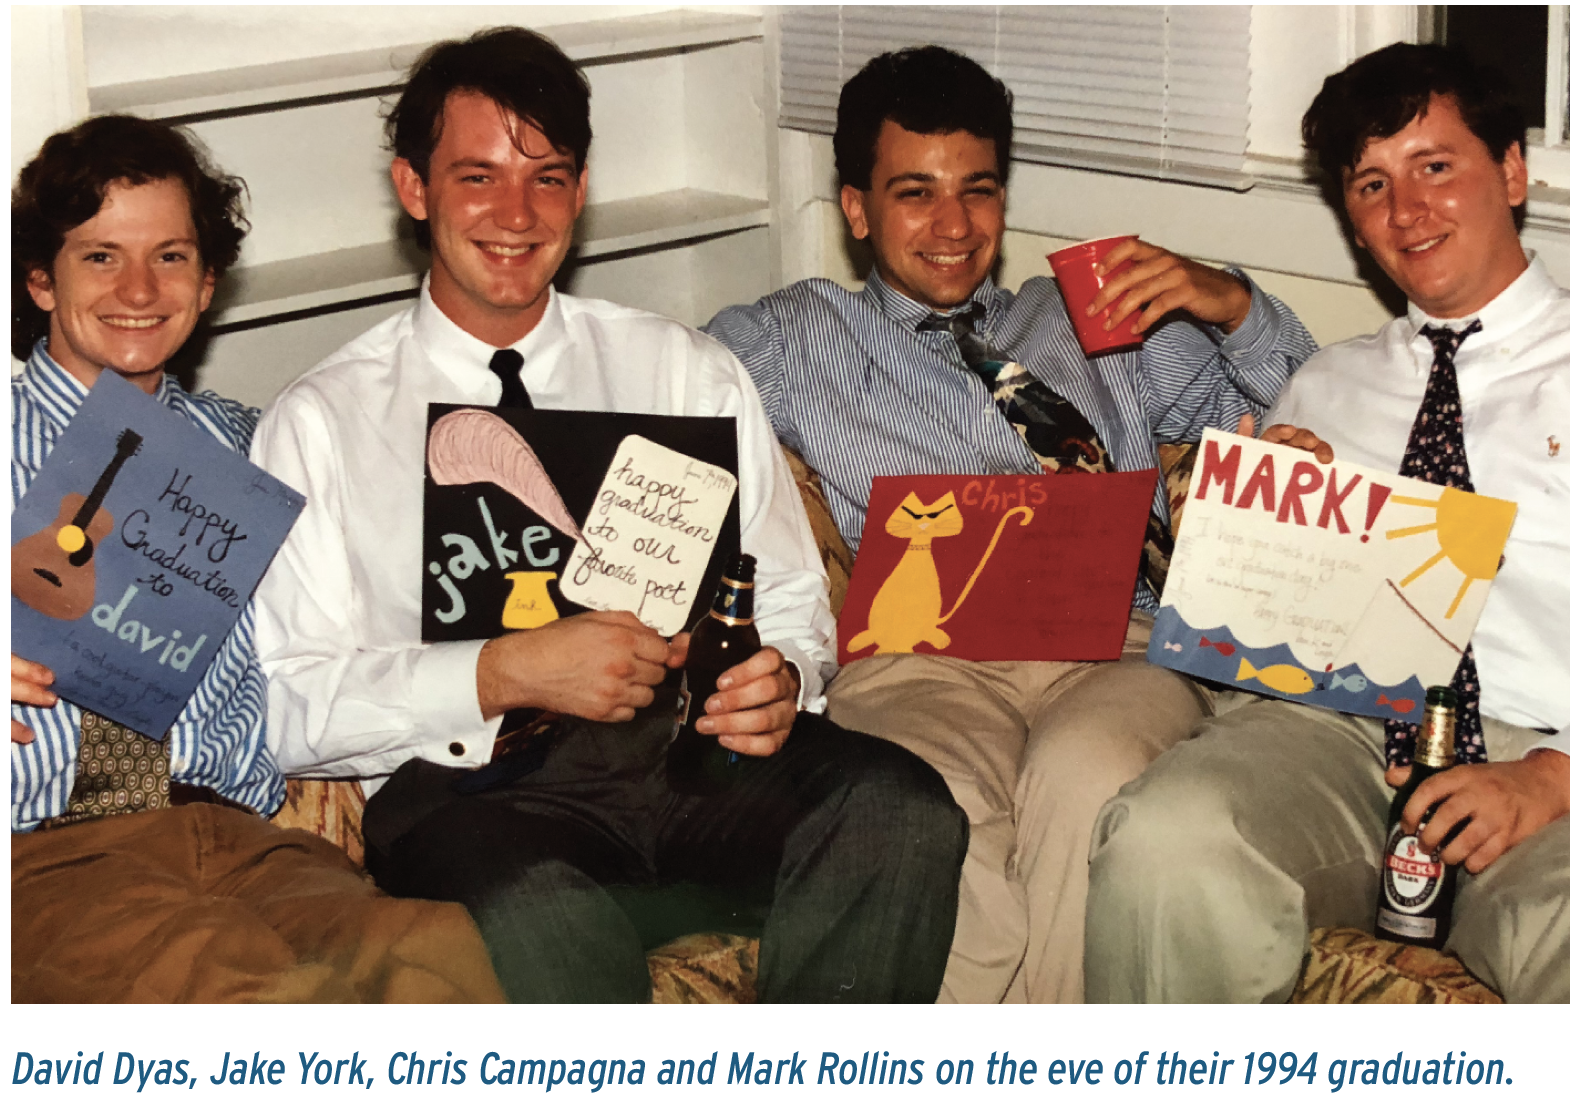 David Dyas, Jake York, Chris Campagna and Mark Rollins on the eve of their 1994 graduation.